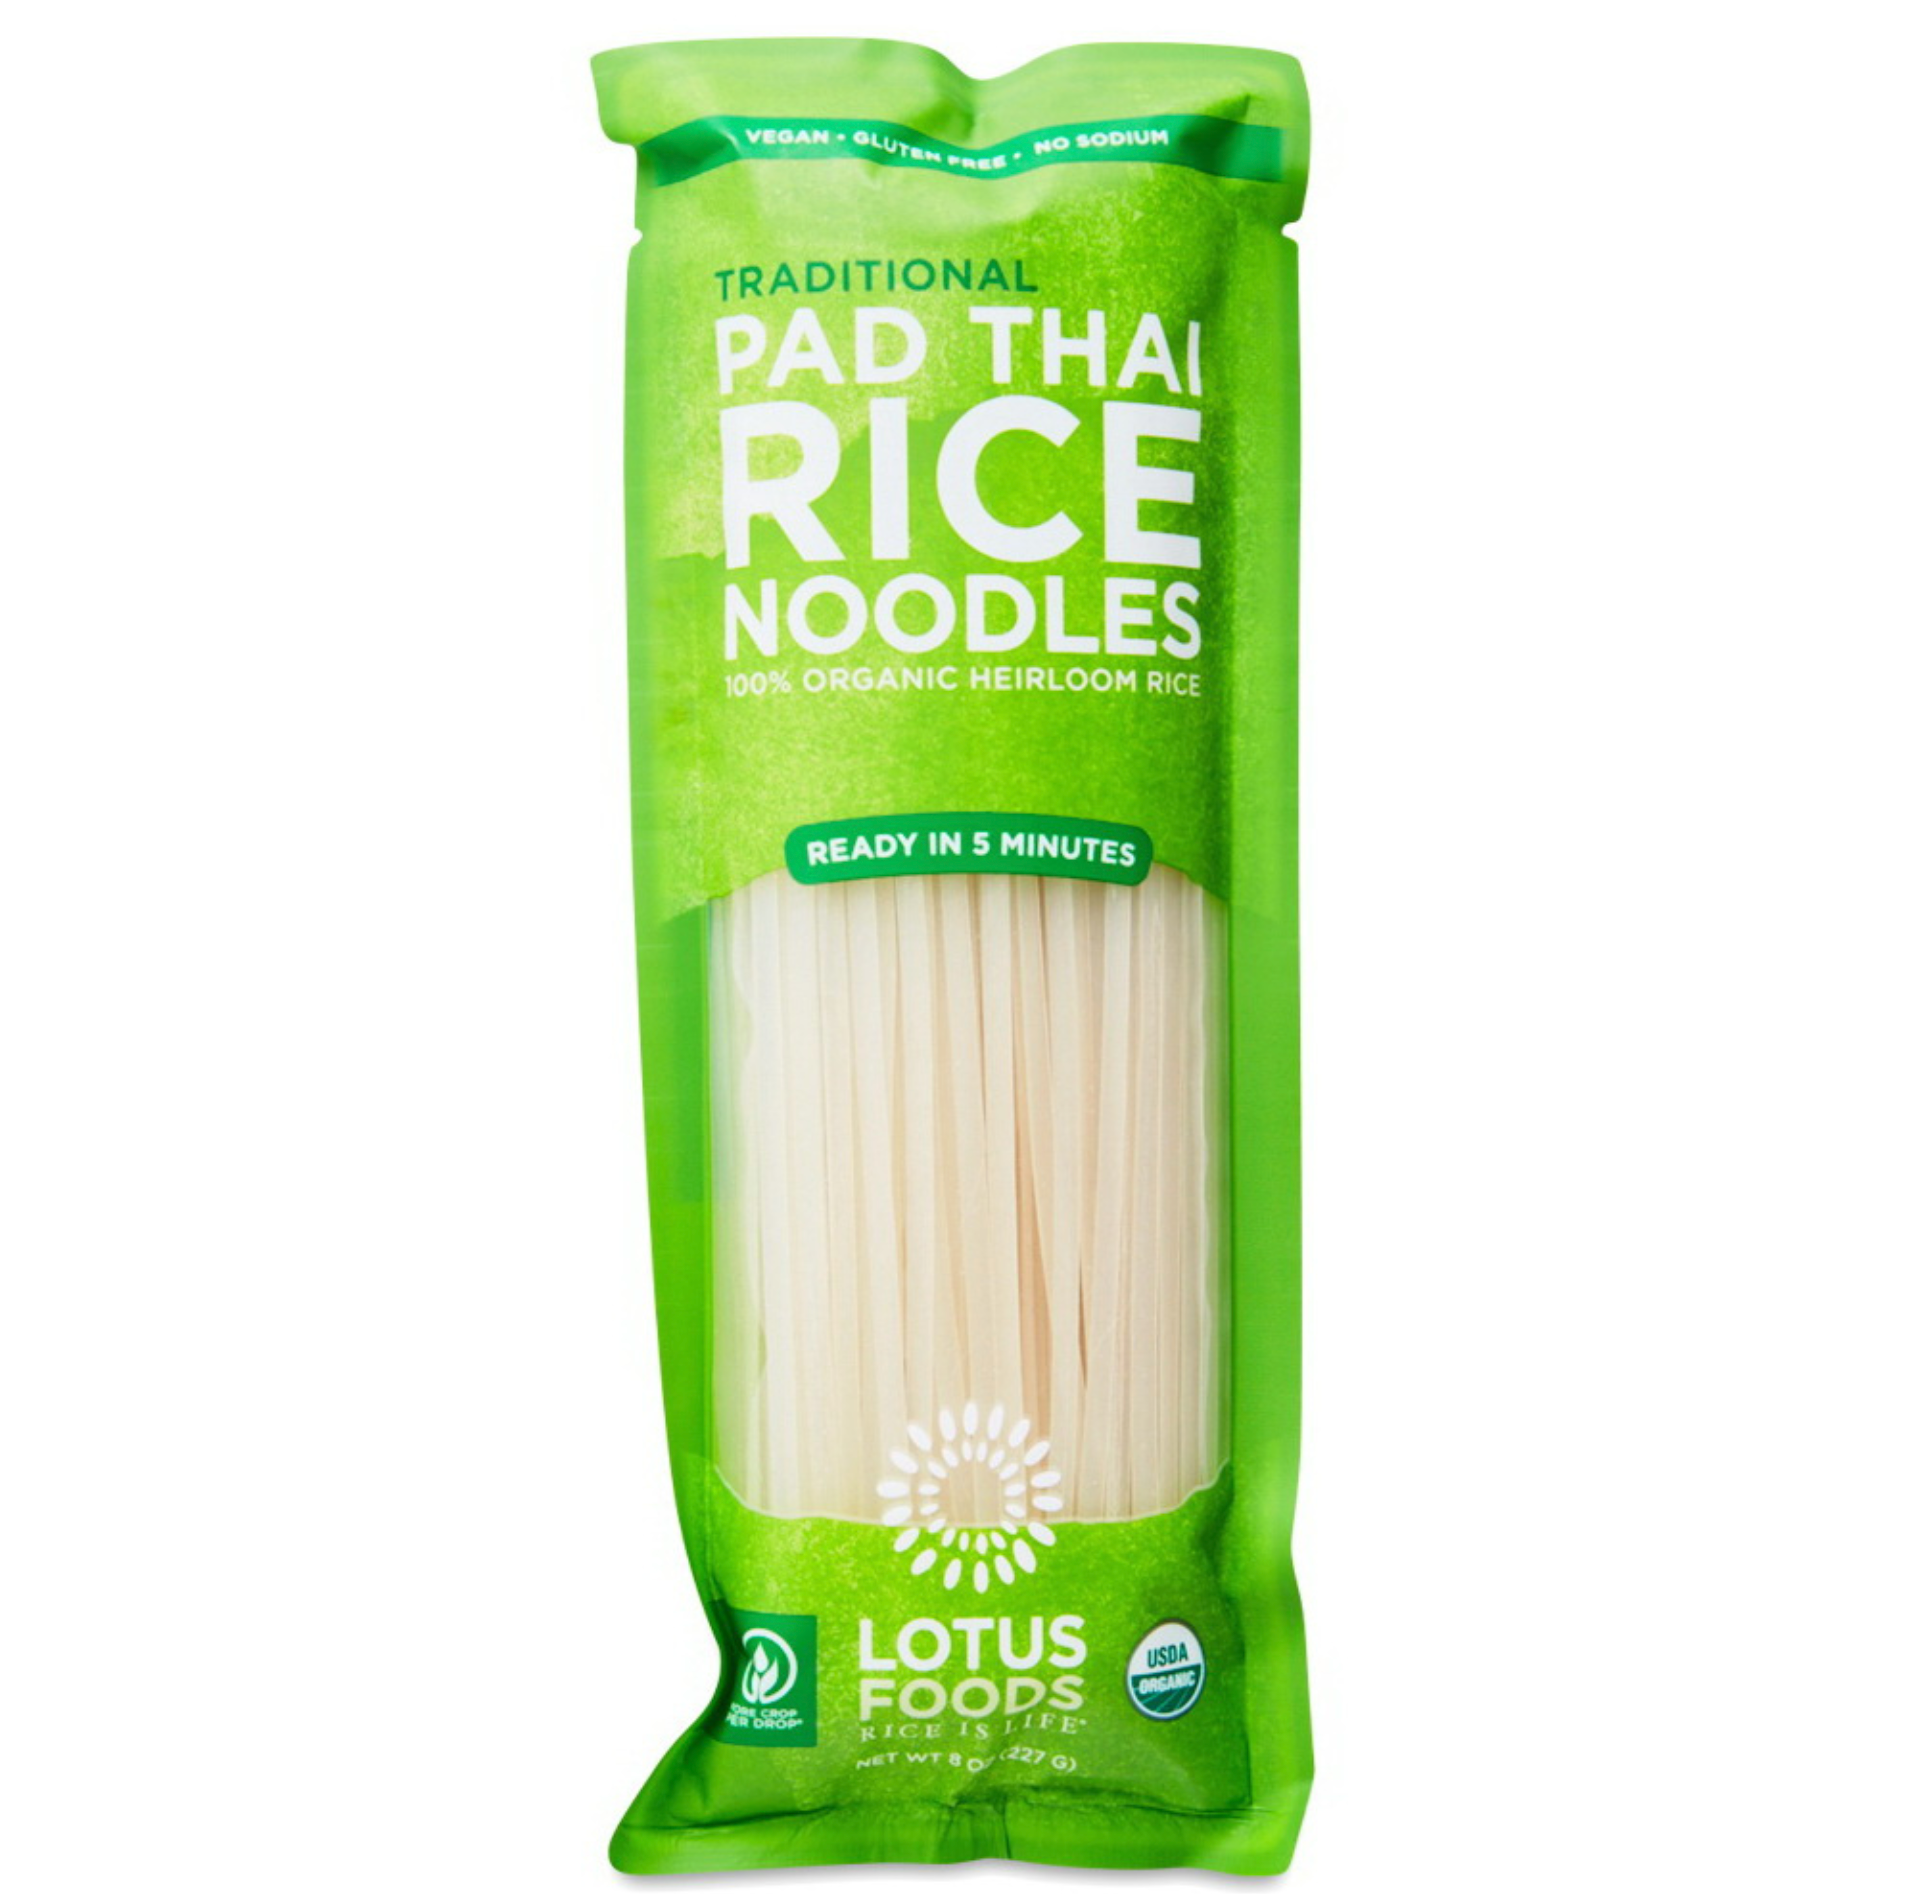 Pad Thai Heirloom Organic Rice Noodles by Lotus Foods